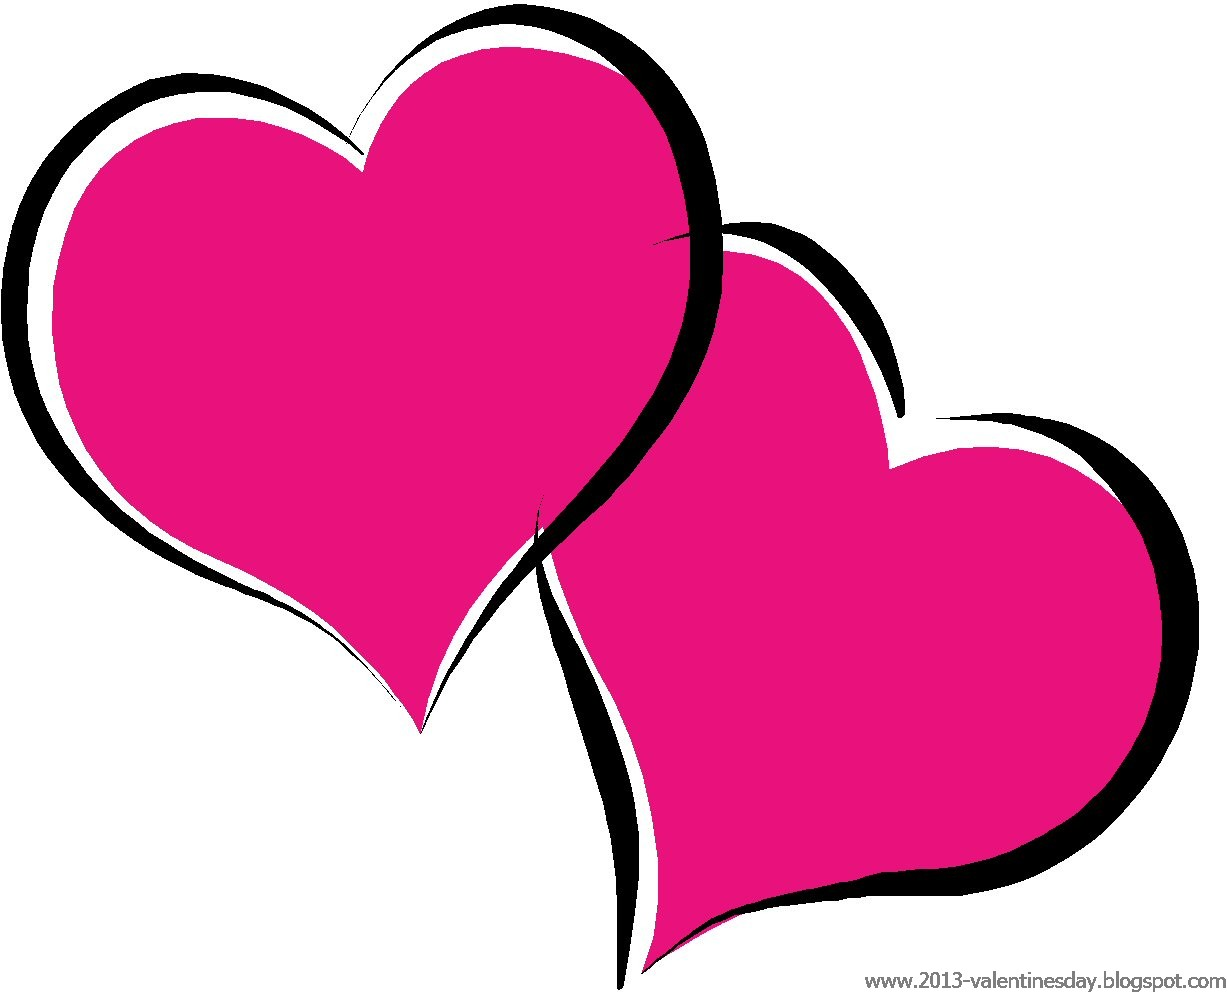 Baby bubble hearts clipart clipart images gallery for free.